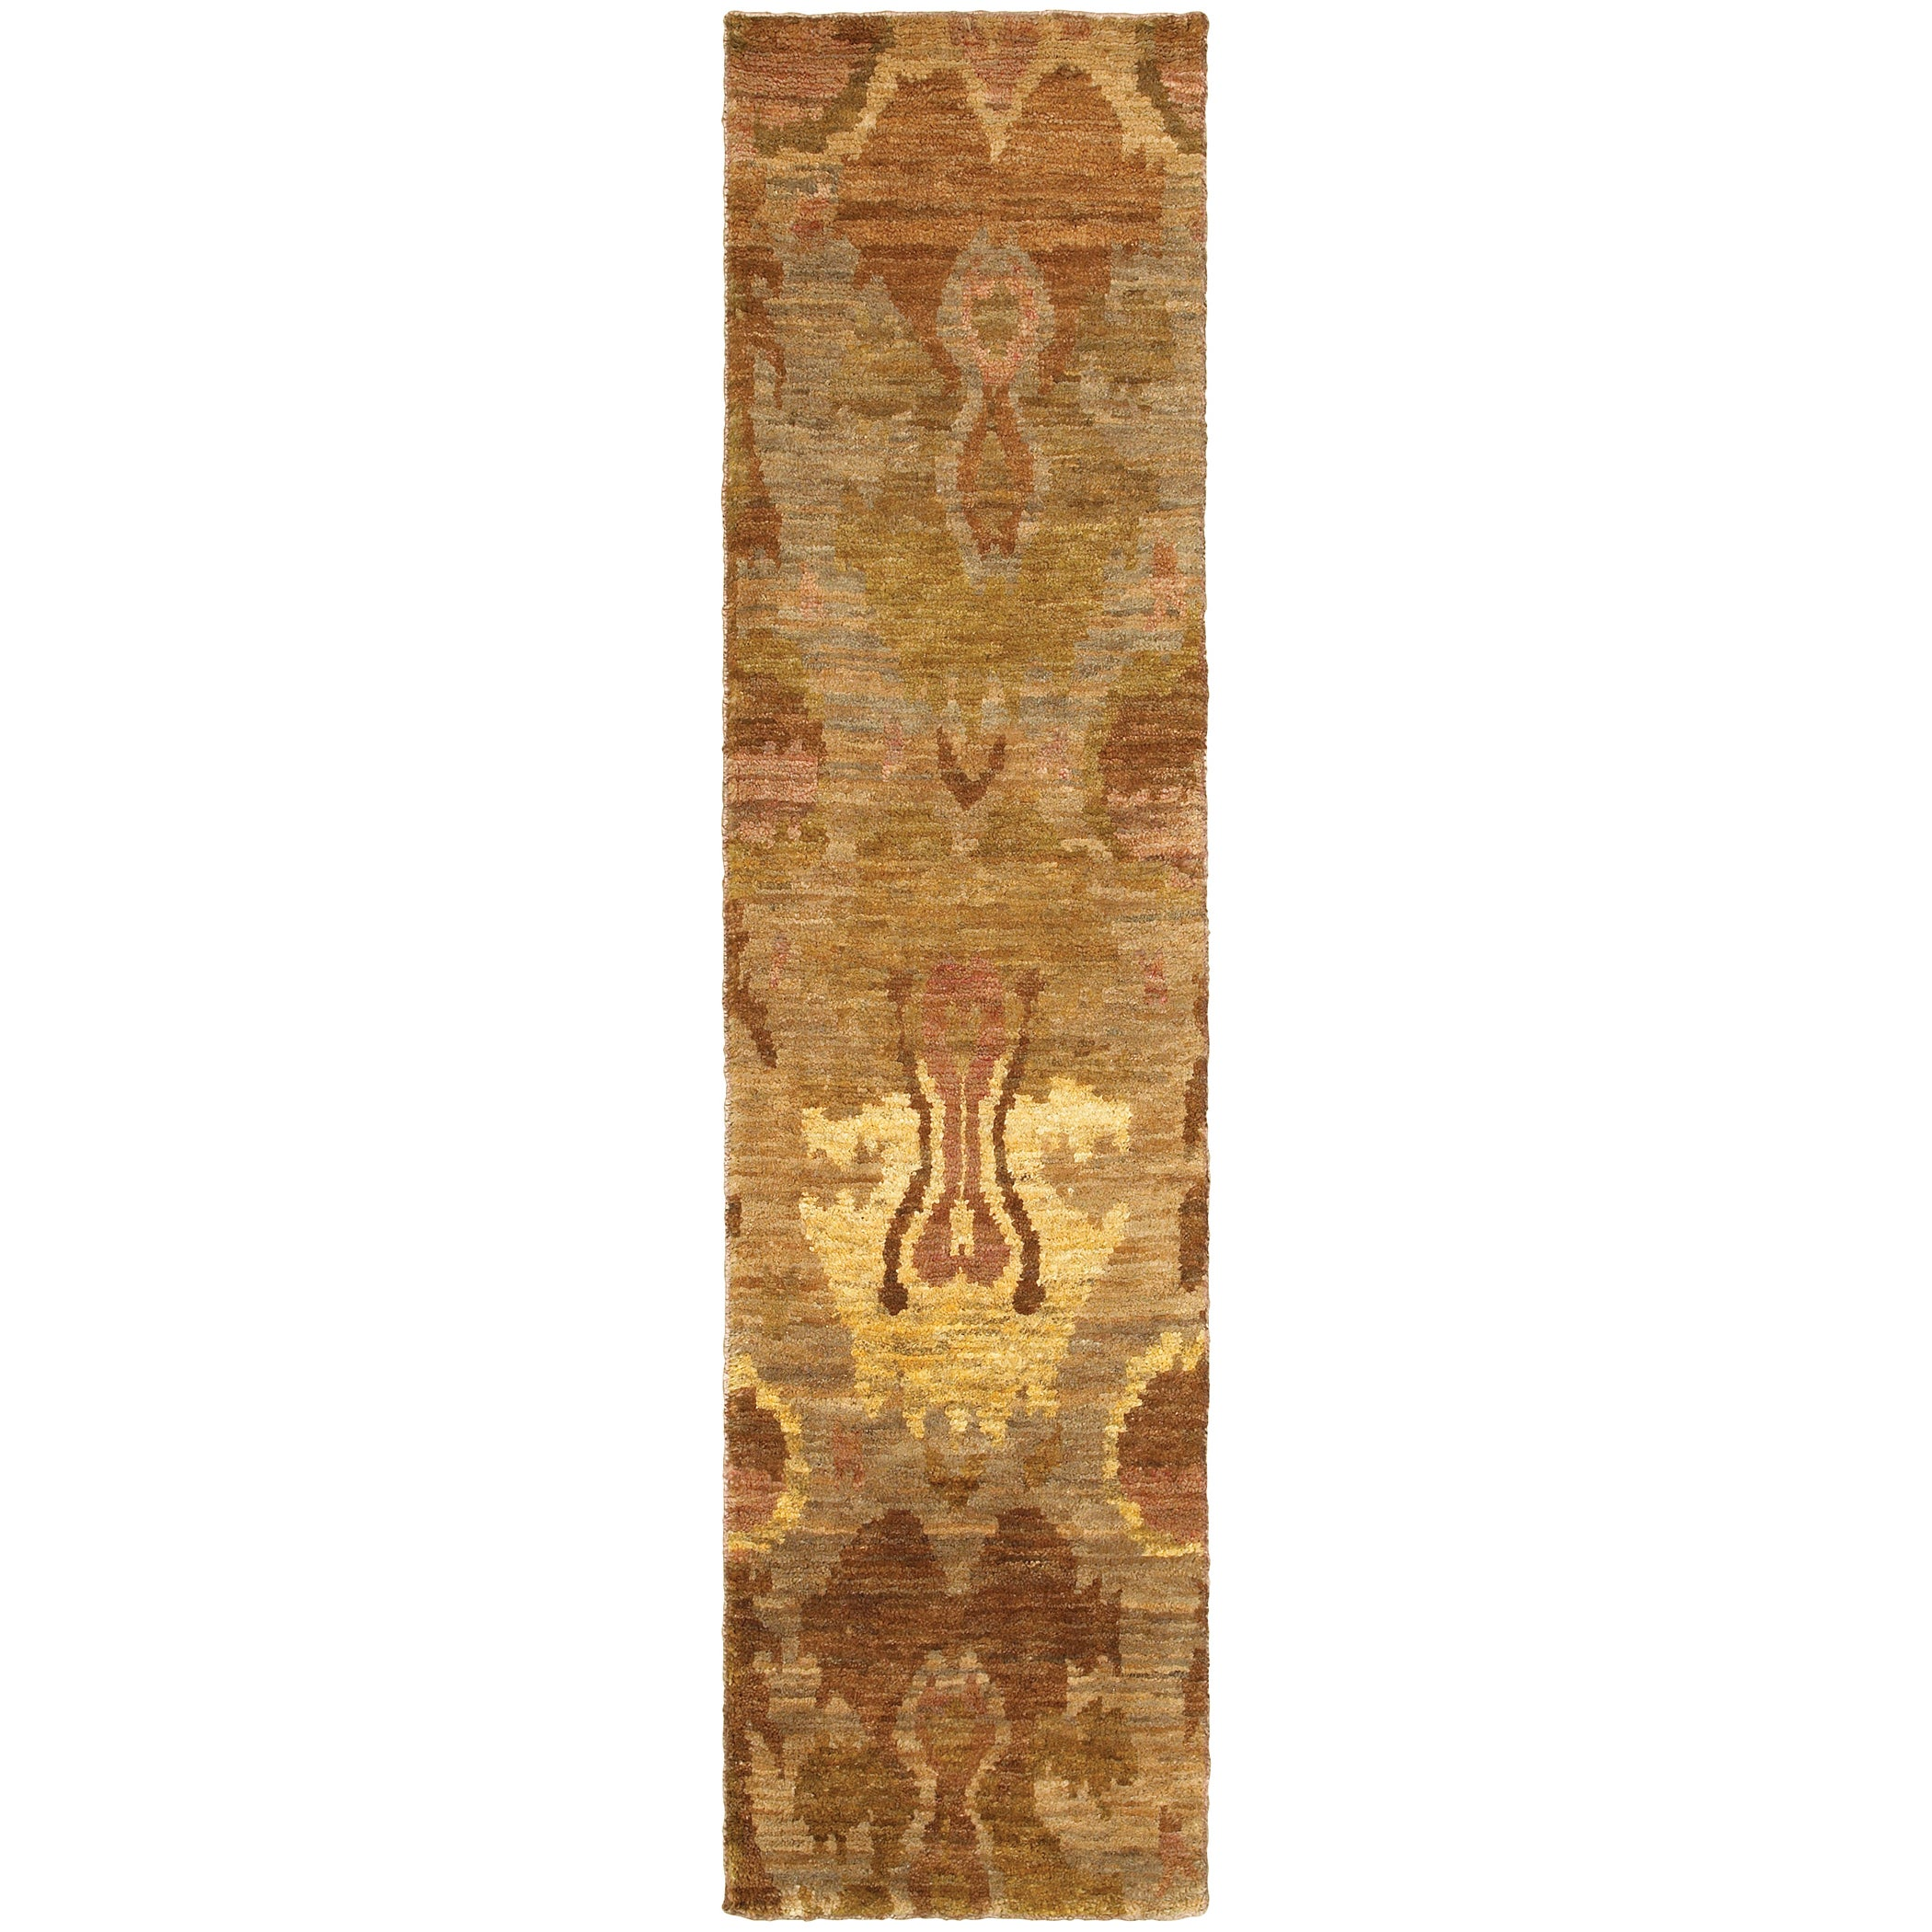 Tommy Bahama Ansley Beige/Orange Jute Area Rug (2'6 x 10'...